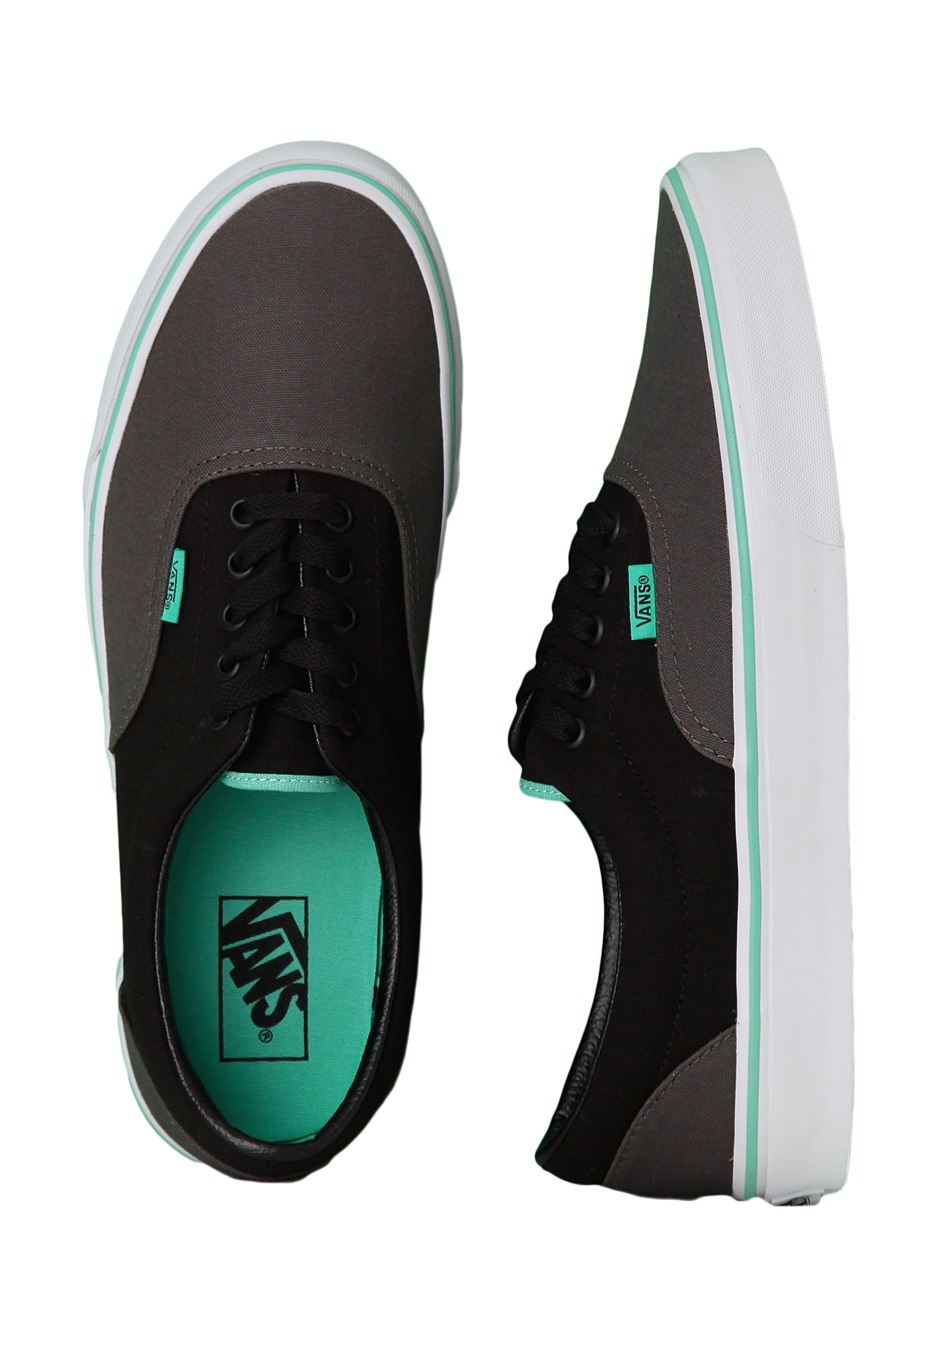 50dec5642681d4 Vans - Era 2 Tone Charcoal Black Biscay Green - Shoes - Impericon.com UK